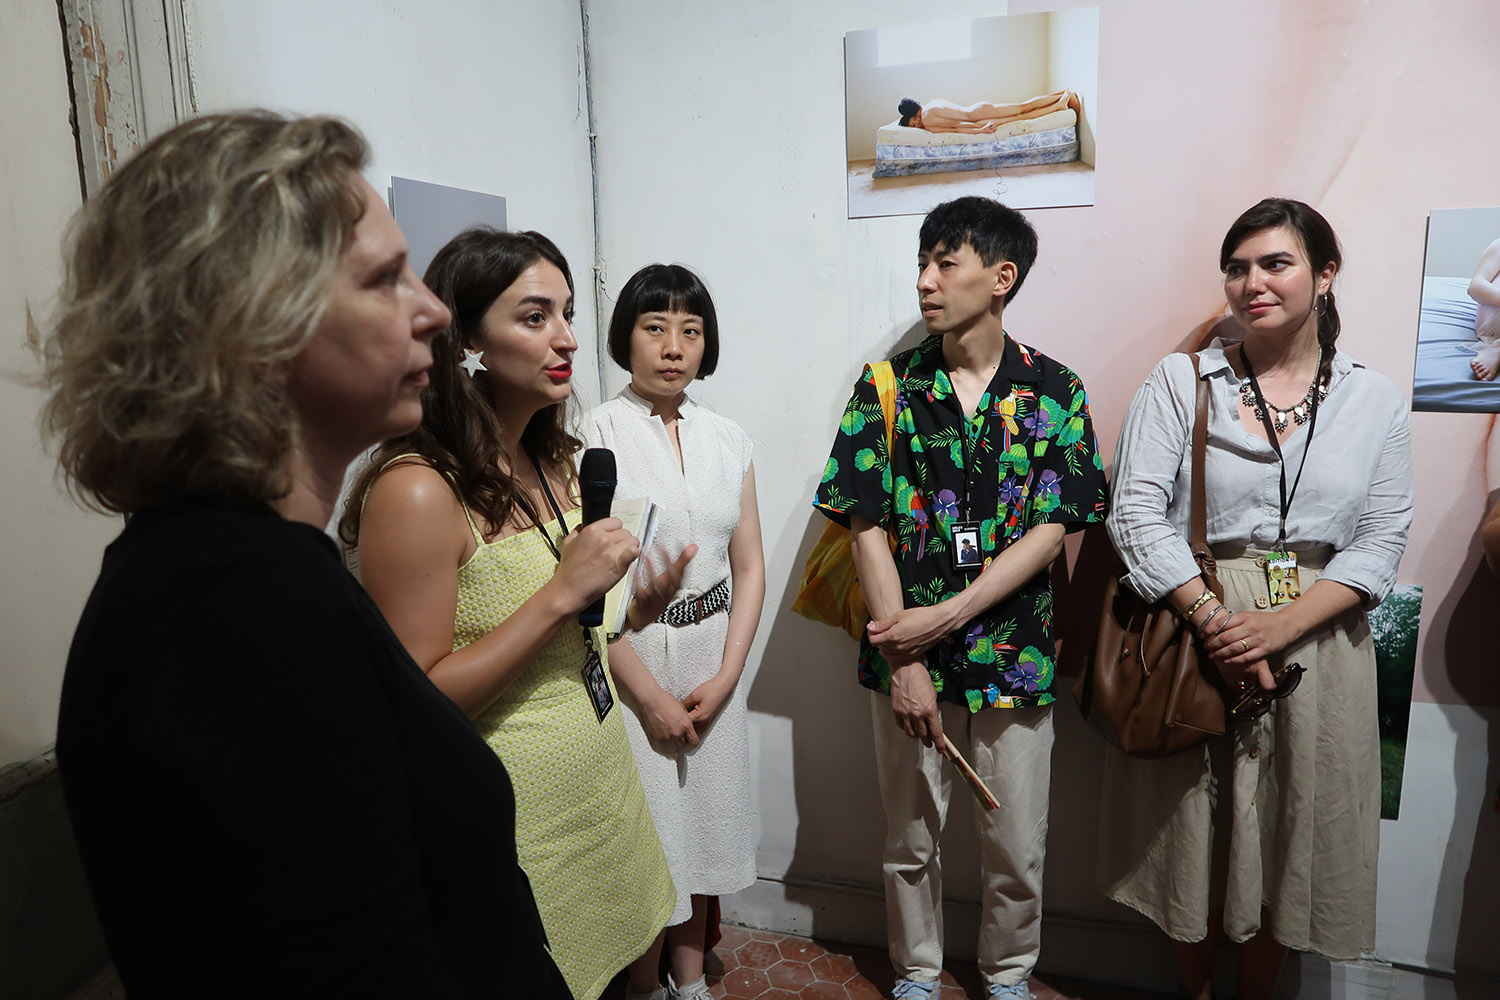 From left to right: Bérénice Angrémy (Jimei x Arles International Photo Festival Art Director), Holly Roussell (Pixy Liao's exhibition Curator), Pixy Liao, Moro (Pixy's partner), and Victoria Jonathan (Jimei x Arles International Photo Festival Art Director) © Marine Cabos-Brullé